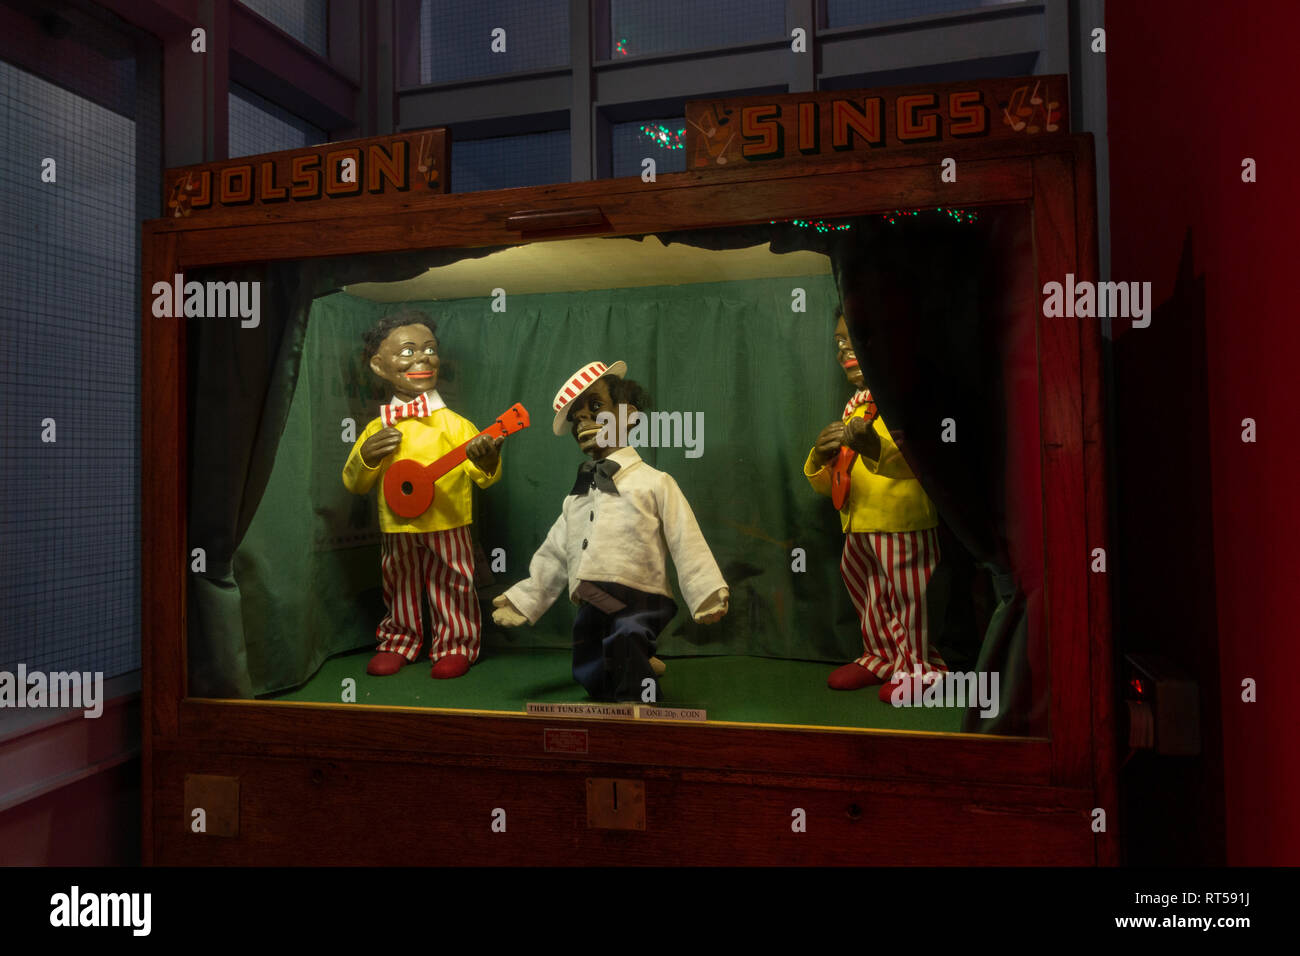 Automaton called 'Jolson Sings' from early 20th Century, York Castle Museum, York, Yorkshire, UK. - Stock Image